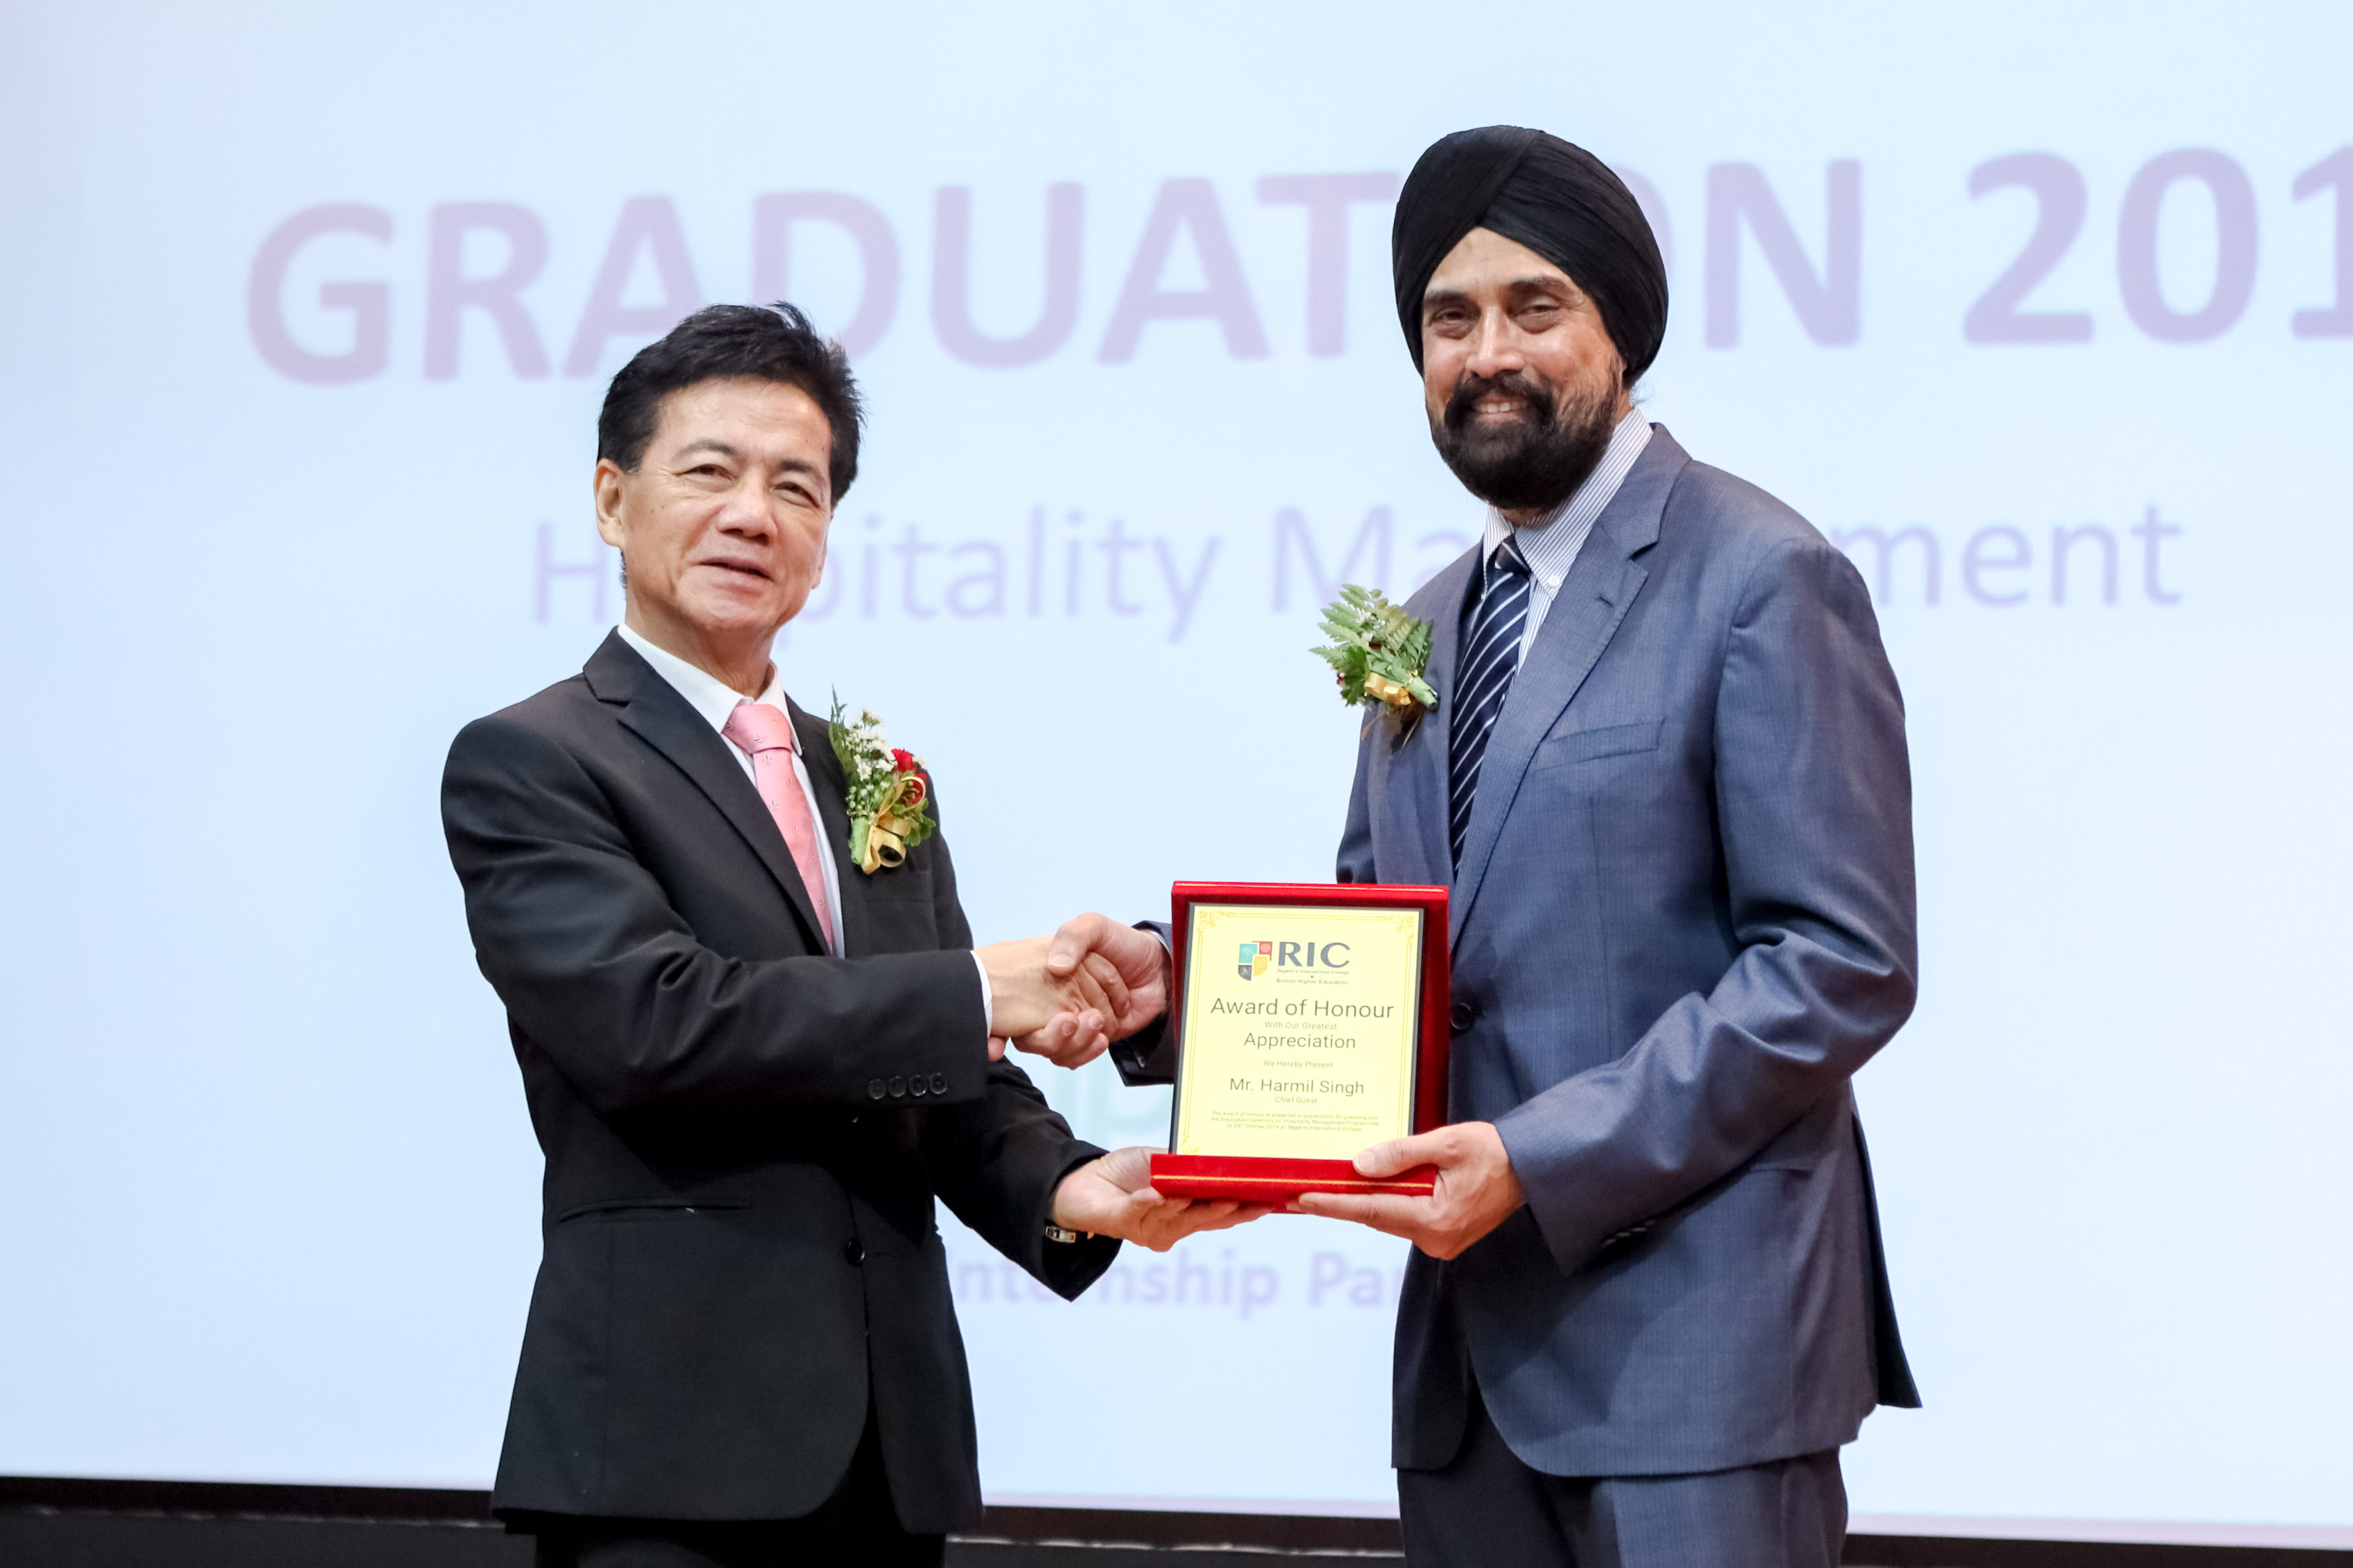 , First Hospitality Management Graduation Ceremony of Regent's International College (RIC), Compass Hospitality